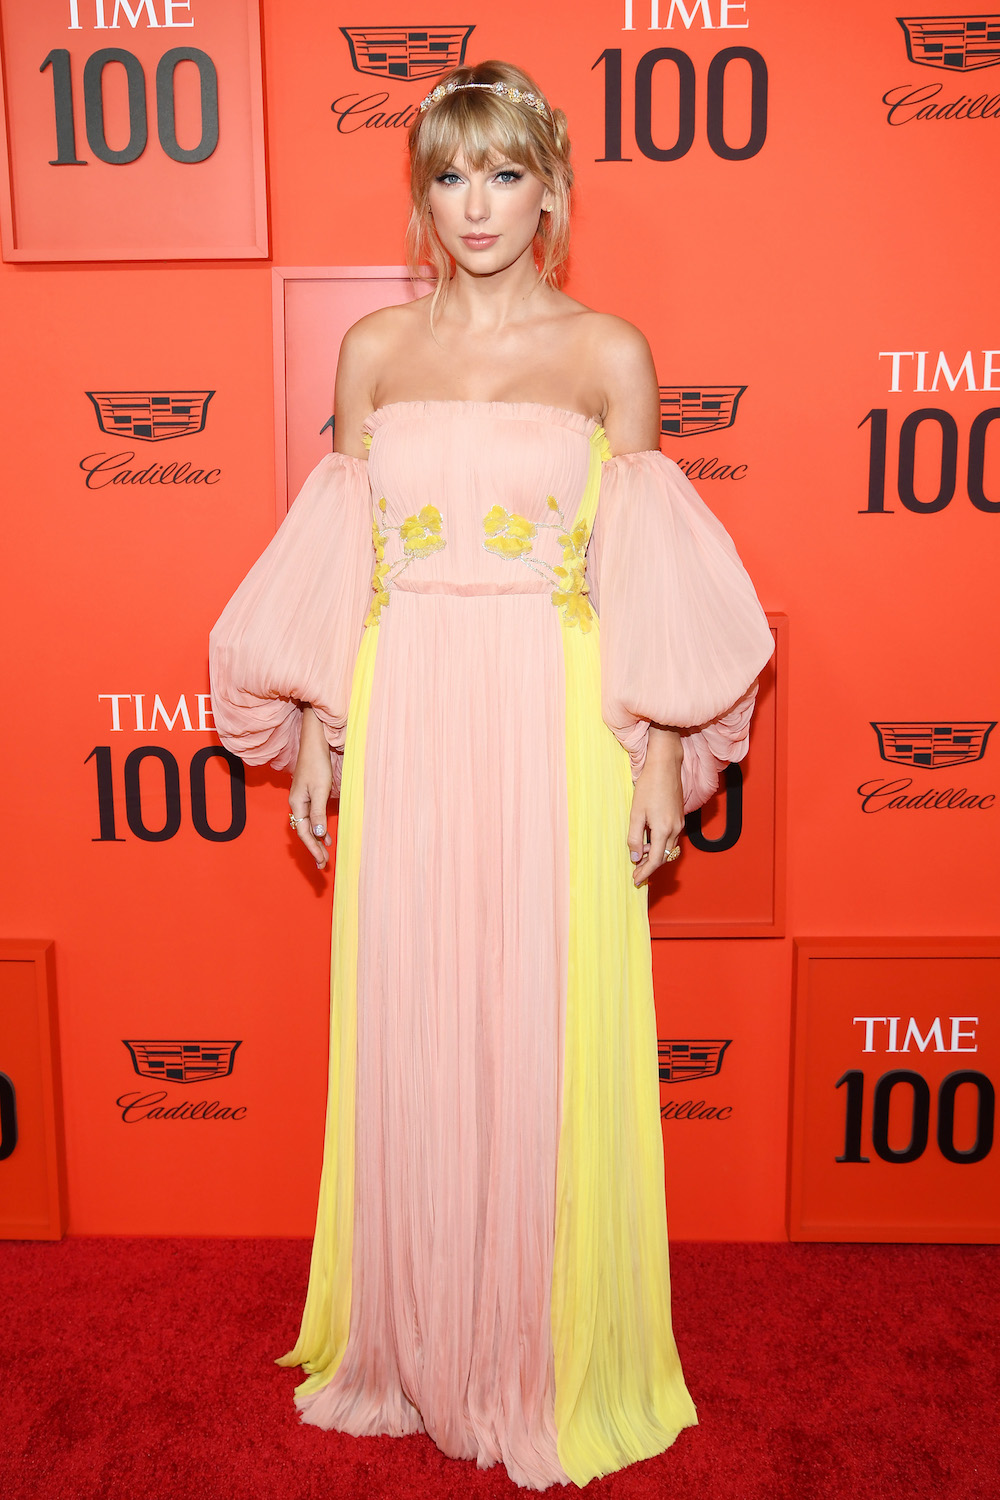 NEW YORK, NEW YORK - APRIL 23: Taylor Swift attends the TIME 100 Gala Red Carpet at Jazz at Lincoln Center on April 23, 2019 in New York City. (Photo by Dimitrios Kambouris/Getty Images for TIME)